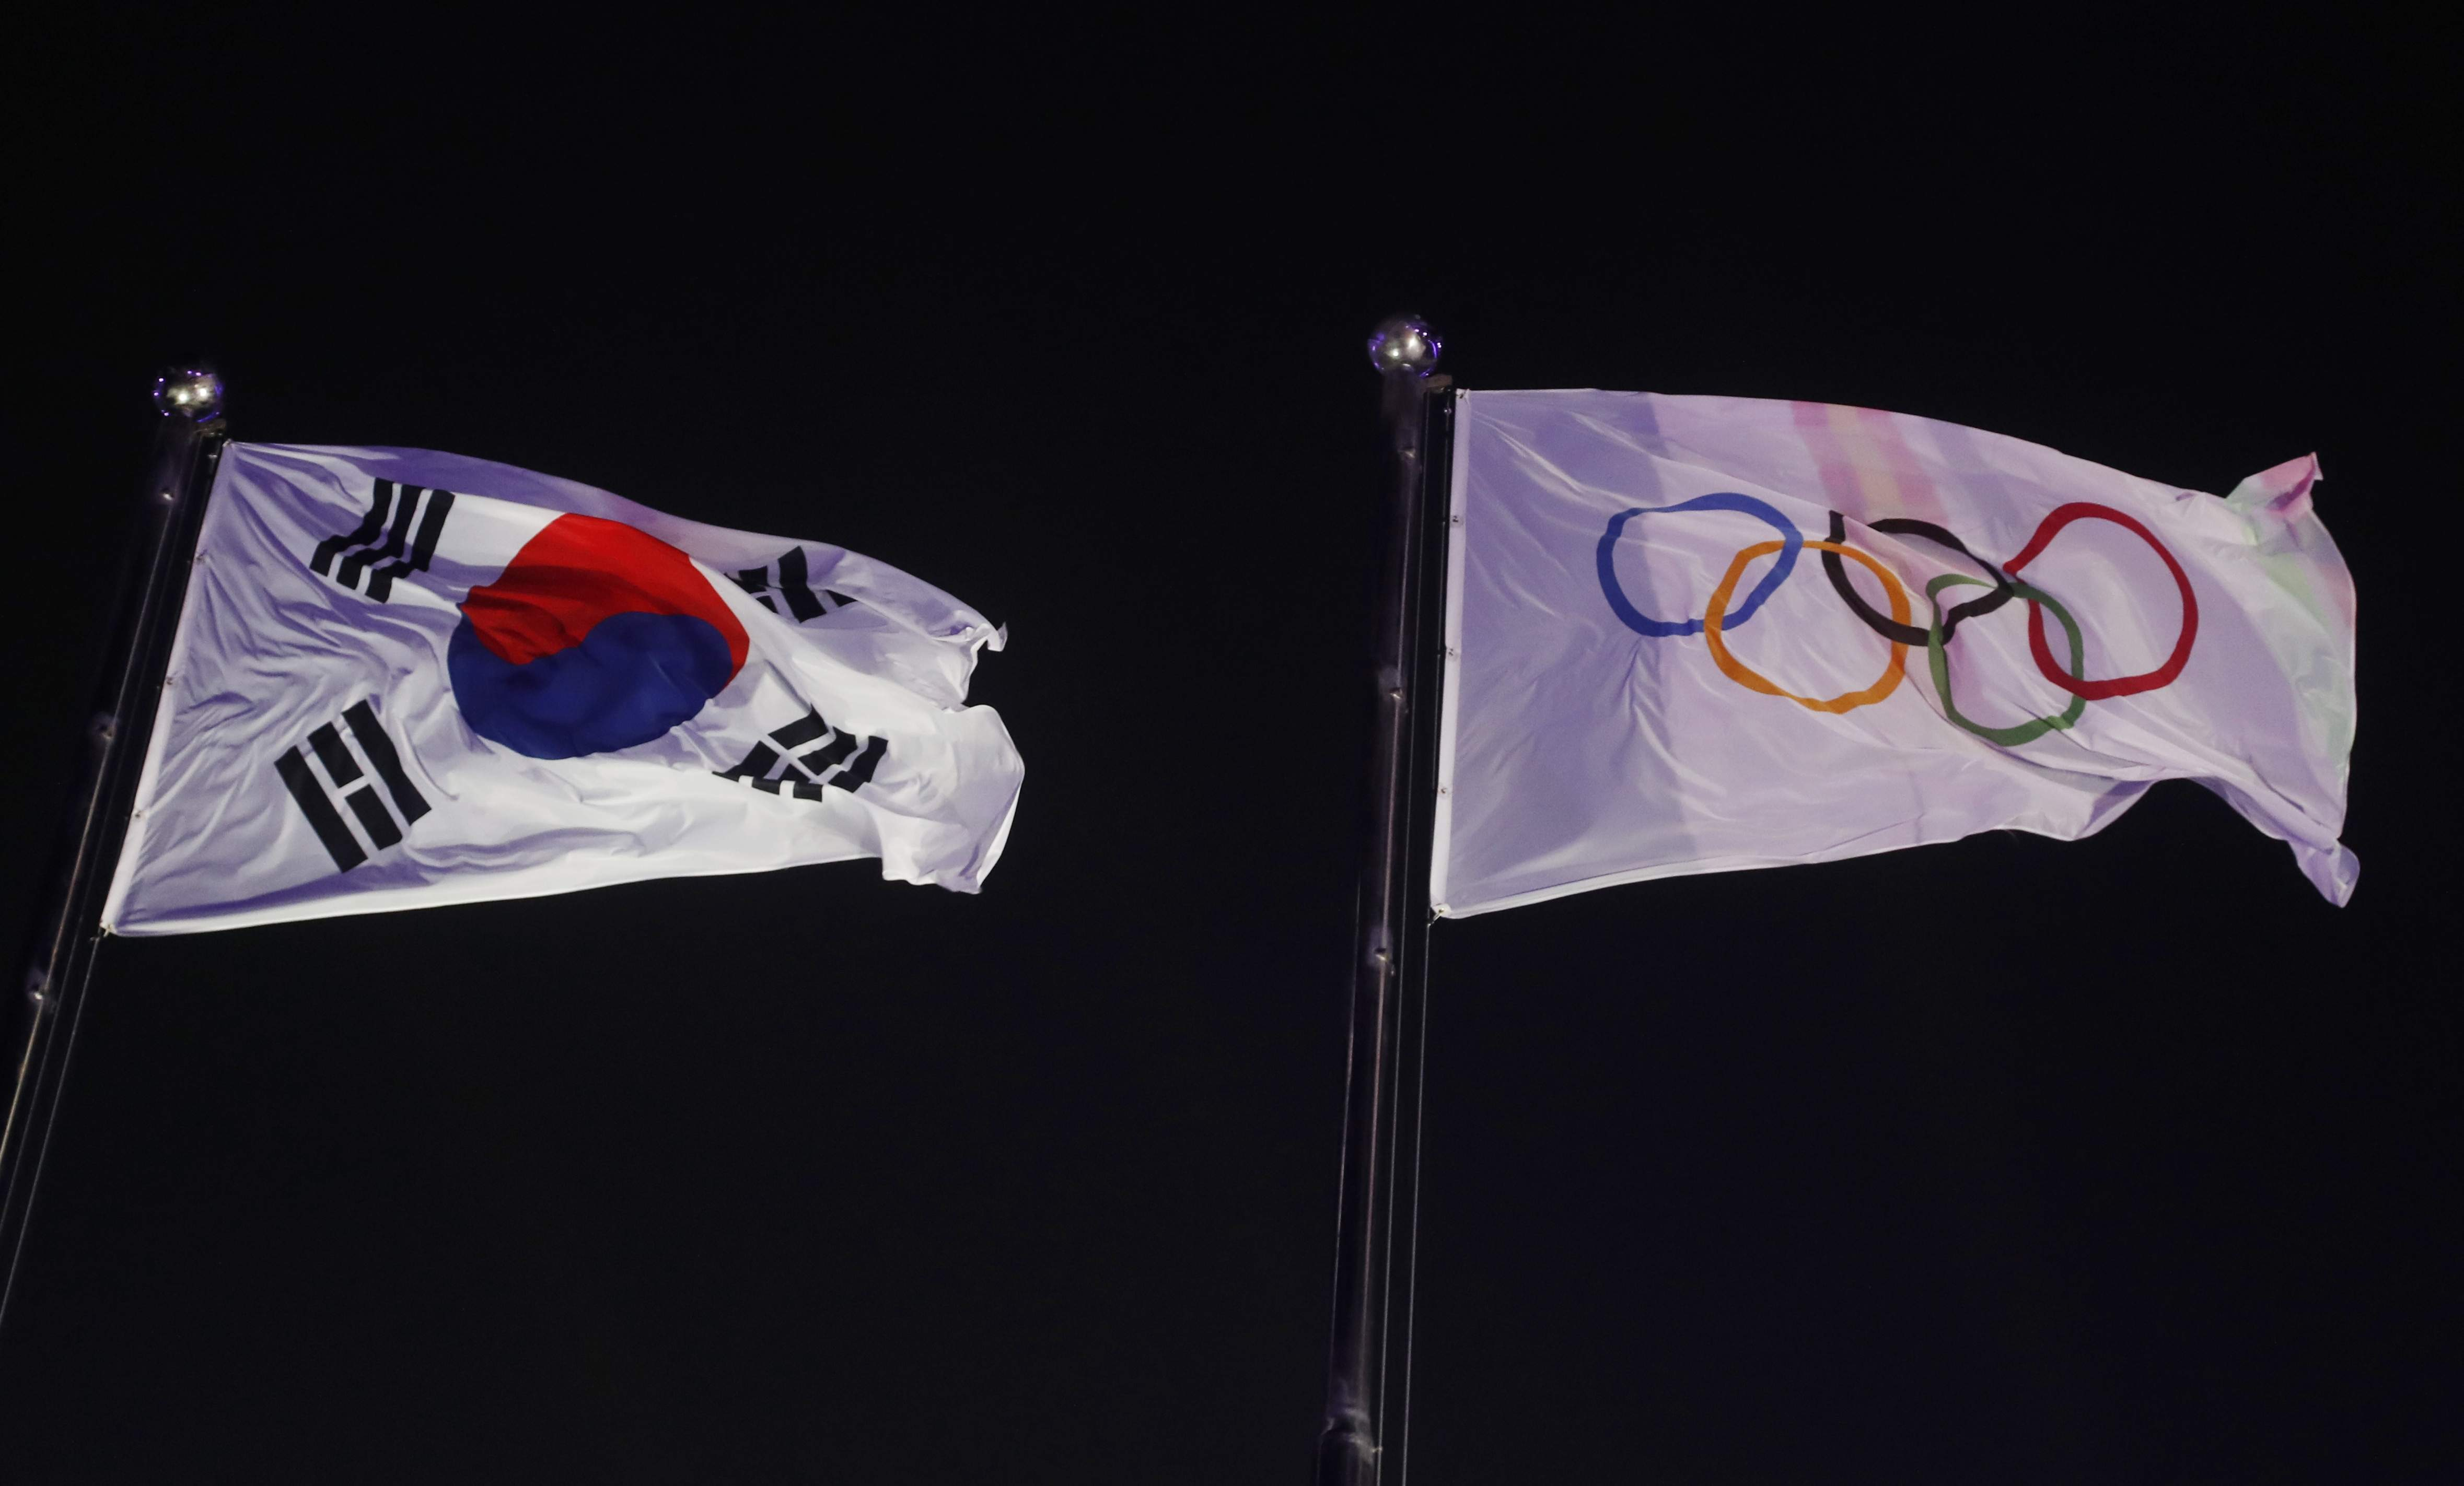 The Olympic flag hangs at right next to the South Korean flag during the opening ceremony of the 2018 Winter Olympics in Pyeongchang, South Korea, Friday, Feb. 9, 2018. (AP Photo/Petr David Josek)